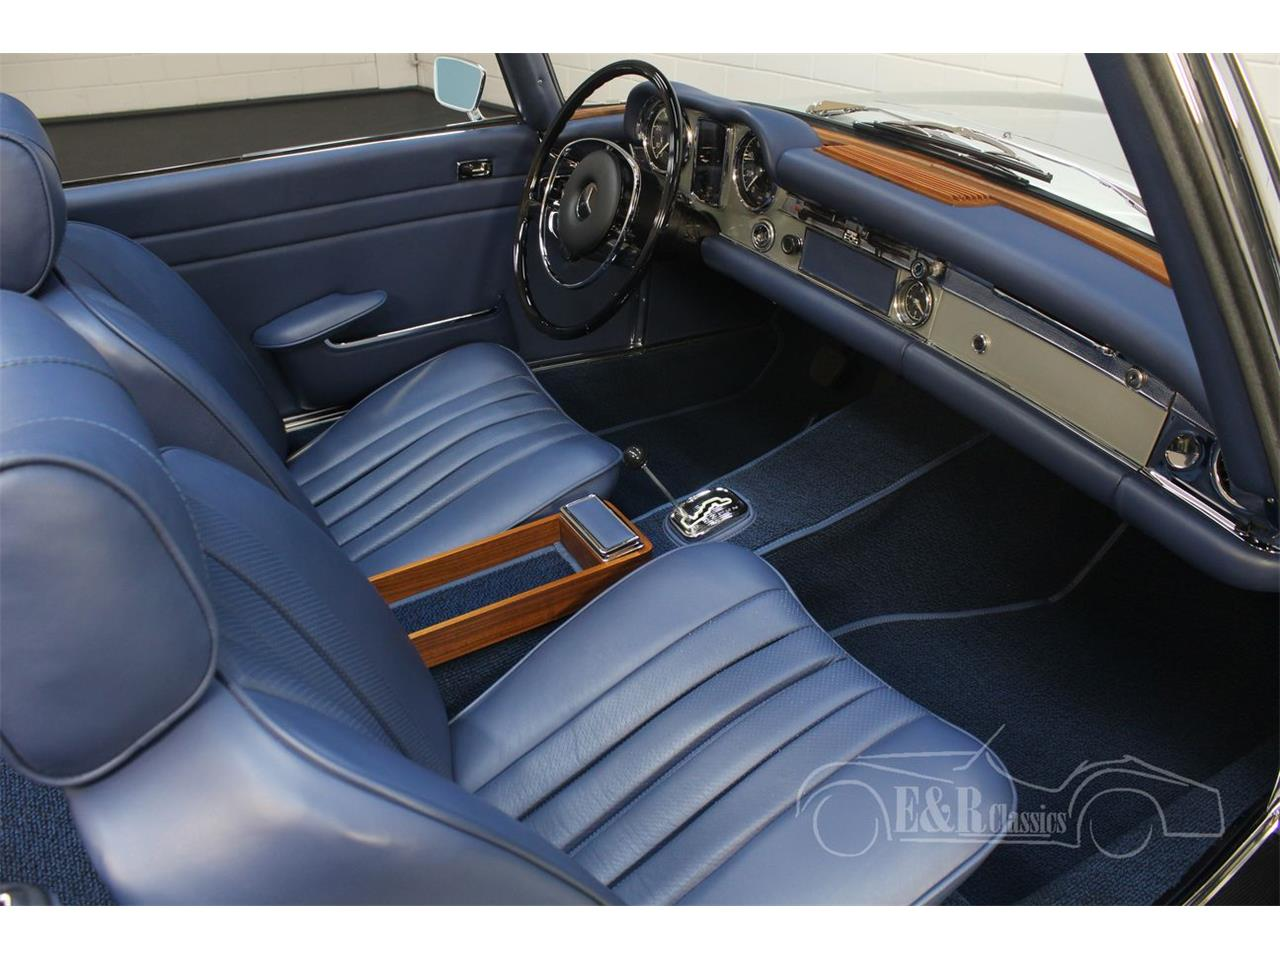 Large Picture of Classic 1969 Mercedes-Benz 280SL located in Waalwijk noord brabant - $190,500.00 Offered by E & R Classics - Q9A0